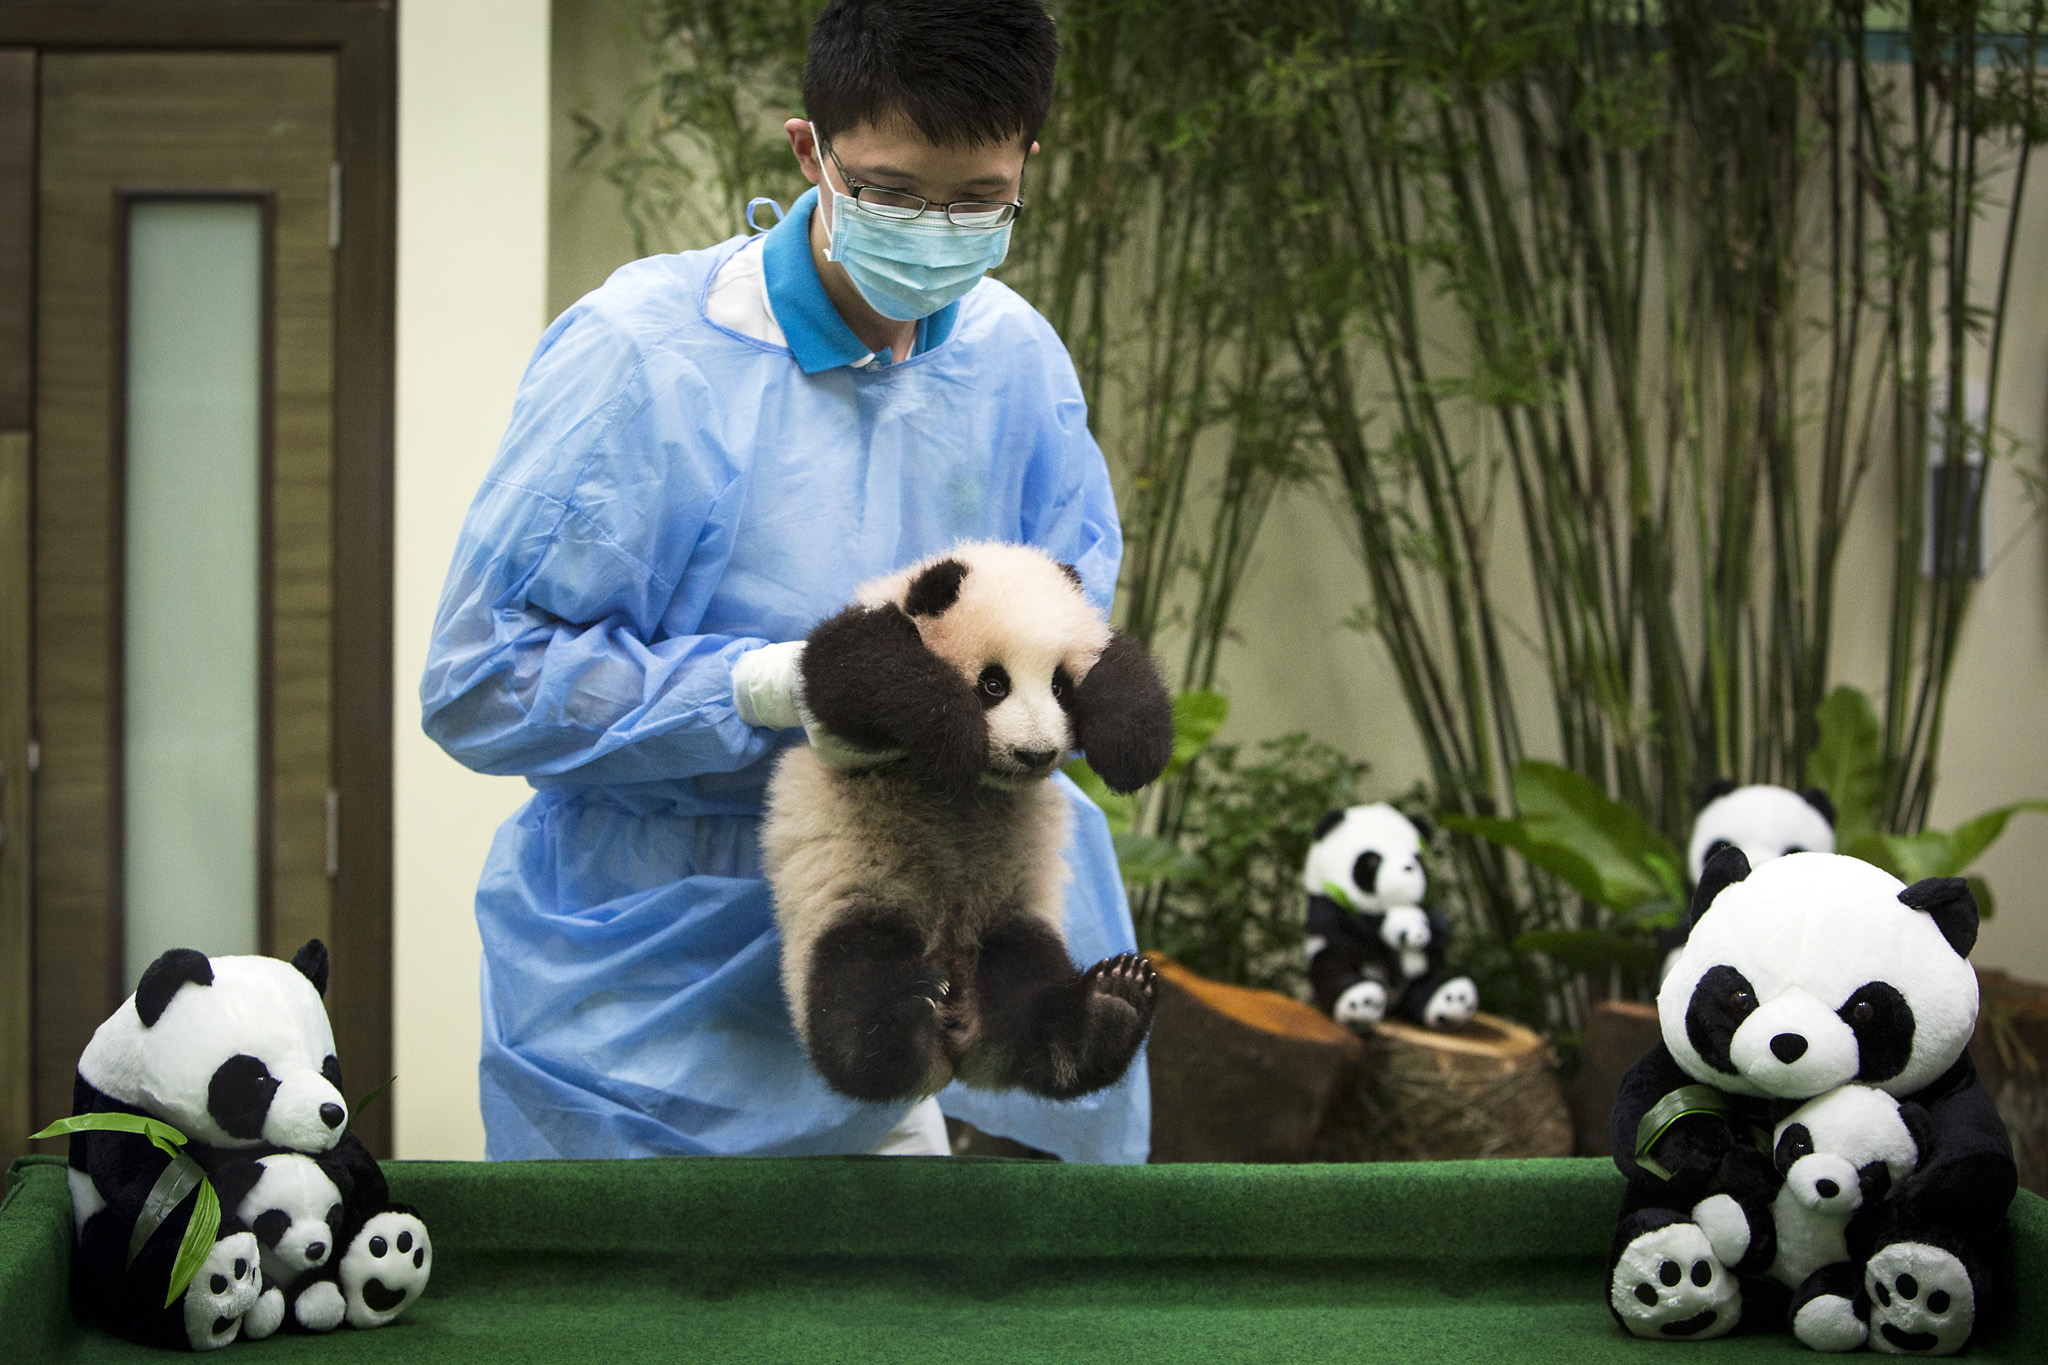 Malaysian zoo personnel carry a 4-month old female giant panda cub at the Giant Panda Conservation Center at the National Zoo in Kuala Lumpur, Malaysia, Tuesday, Nov. 17, 2015. (AP Photo/Joshua Paul)